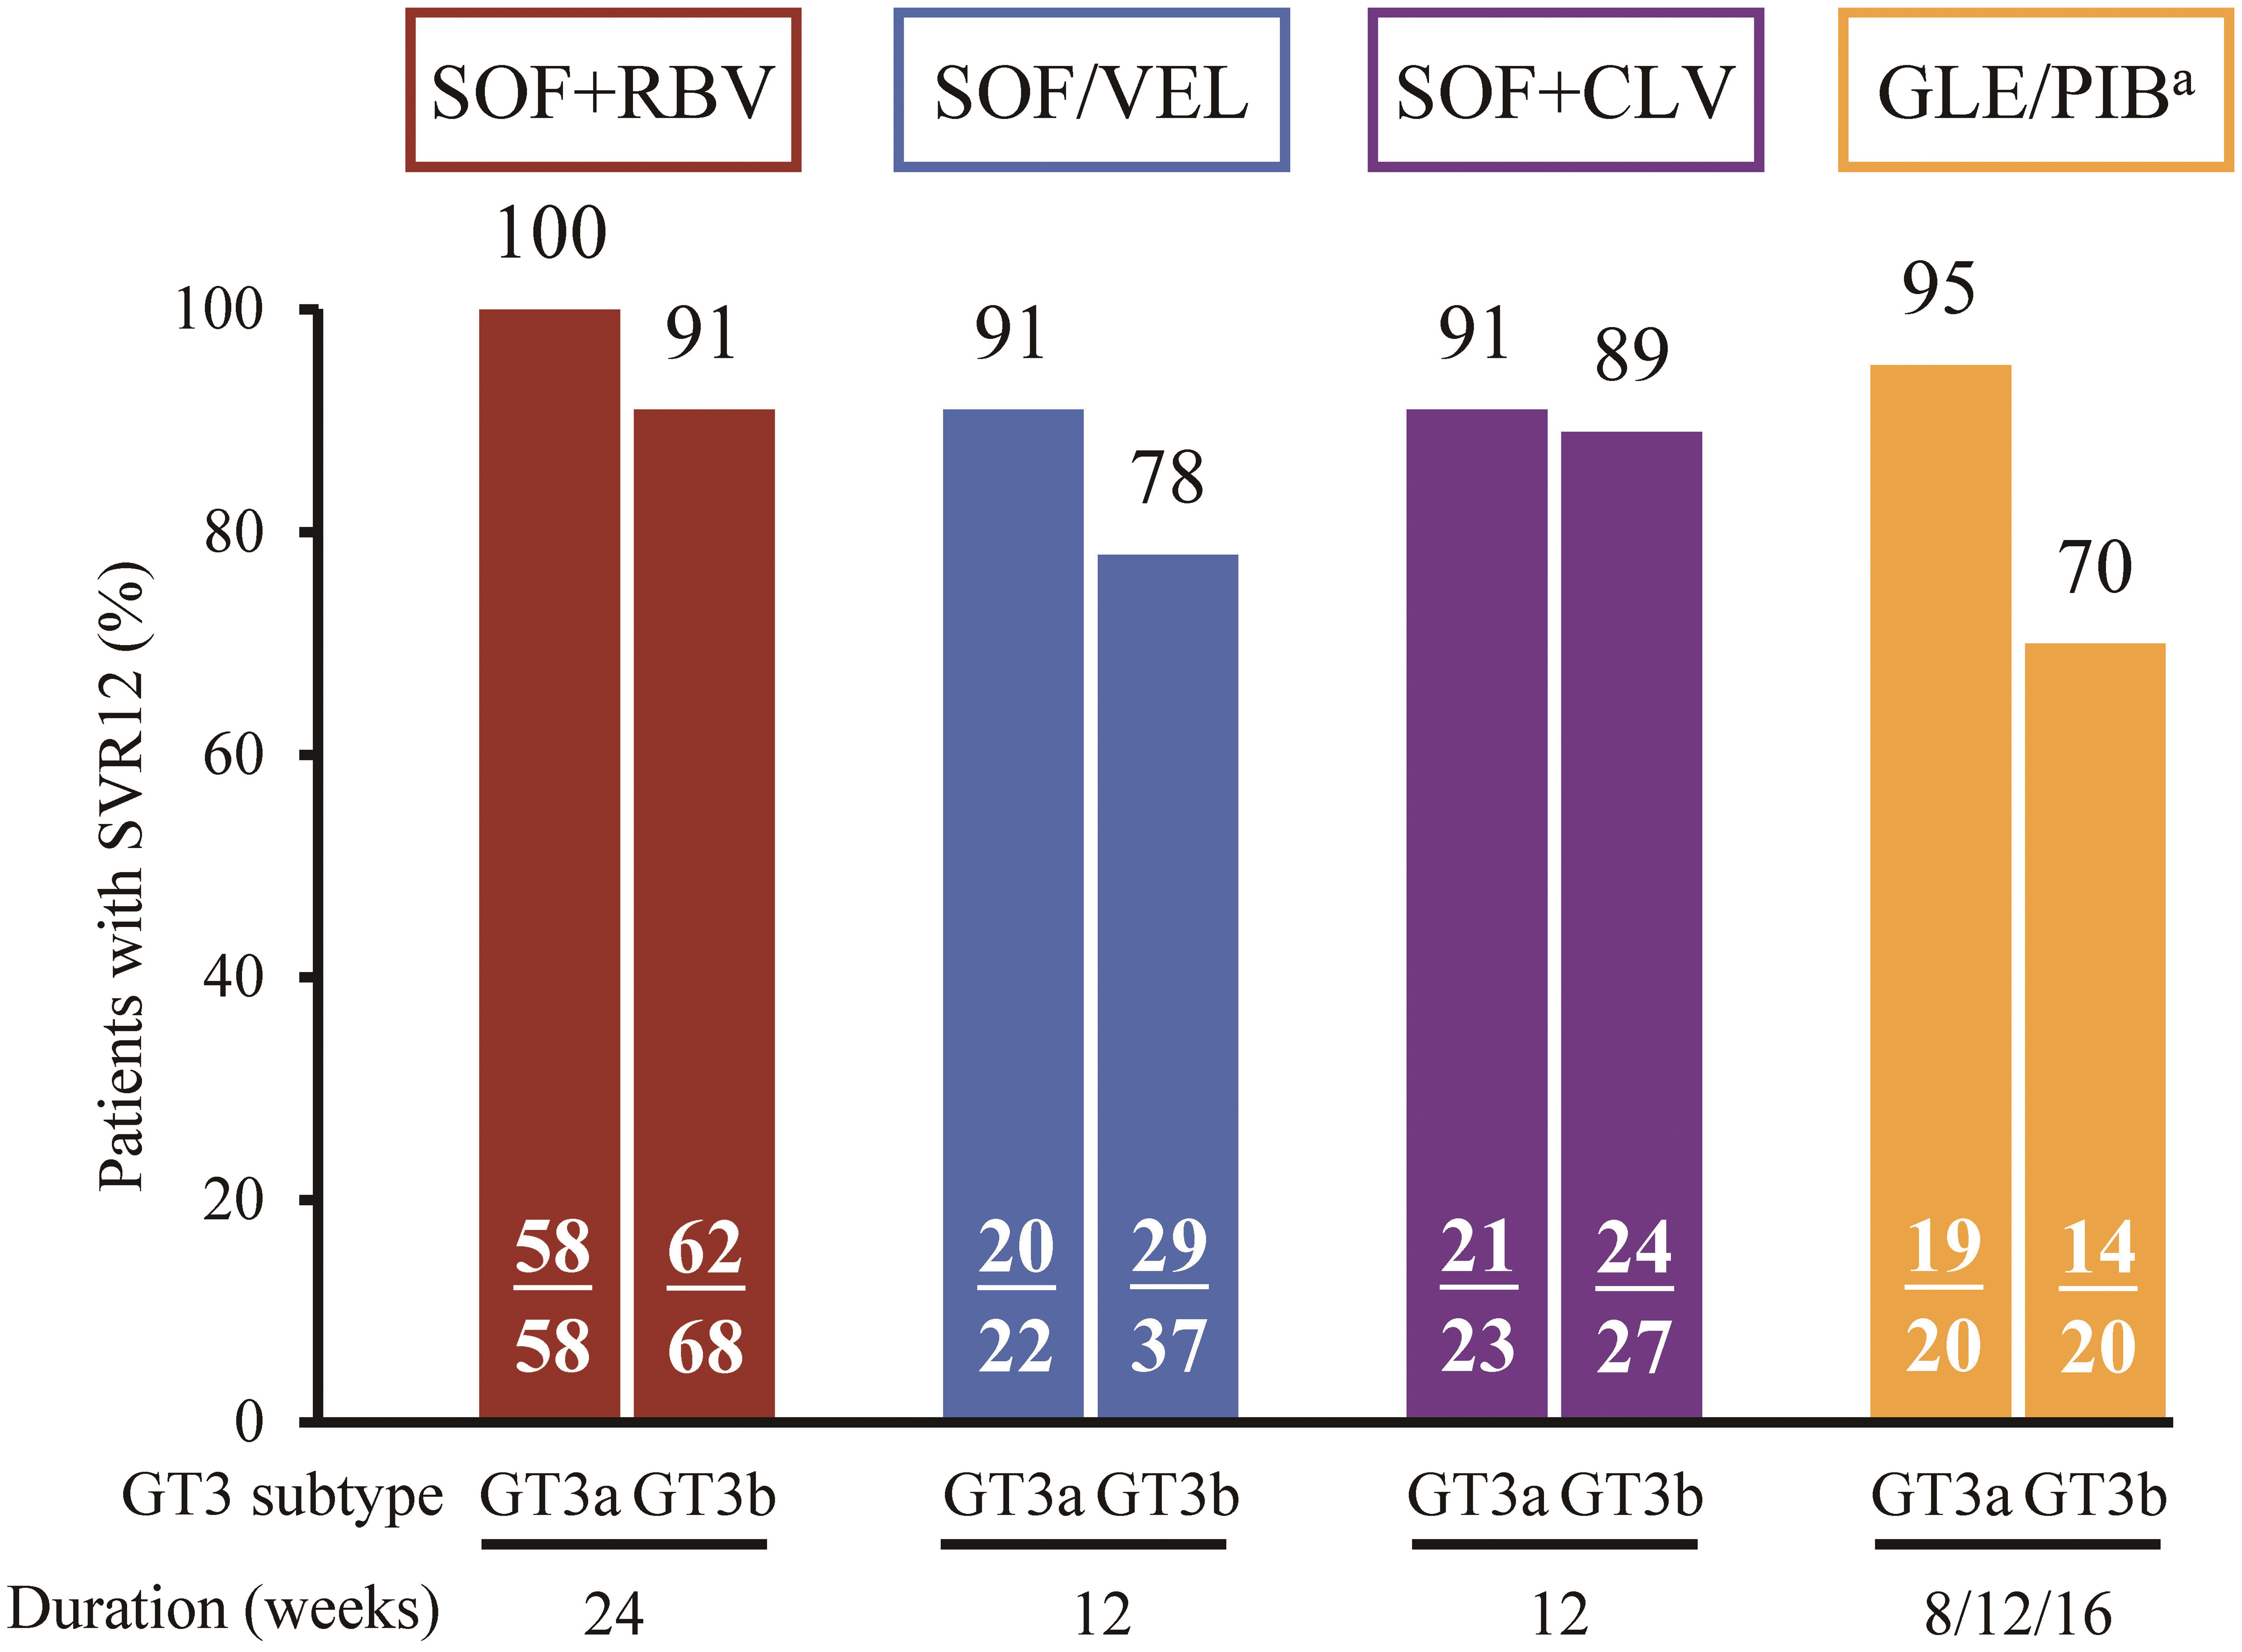 SVR12 rates of SOF+RBV, in Chinese patients with GT3 infection.